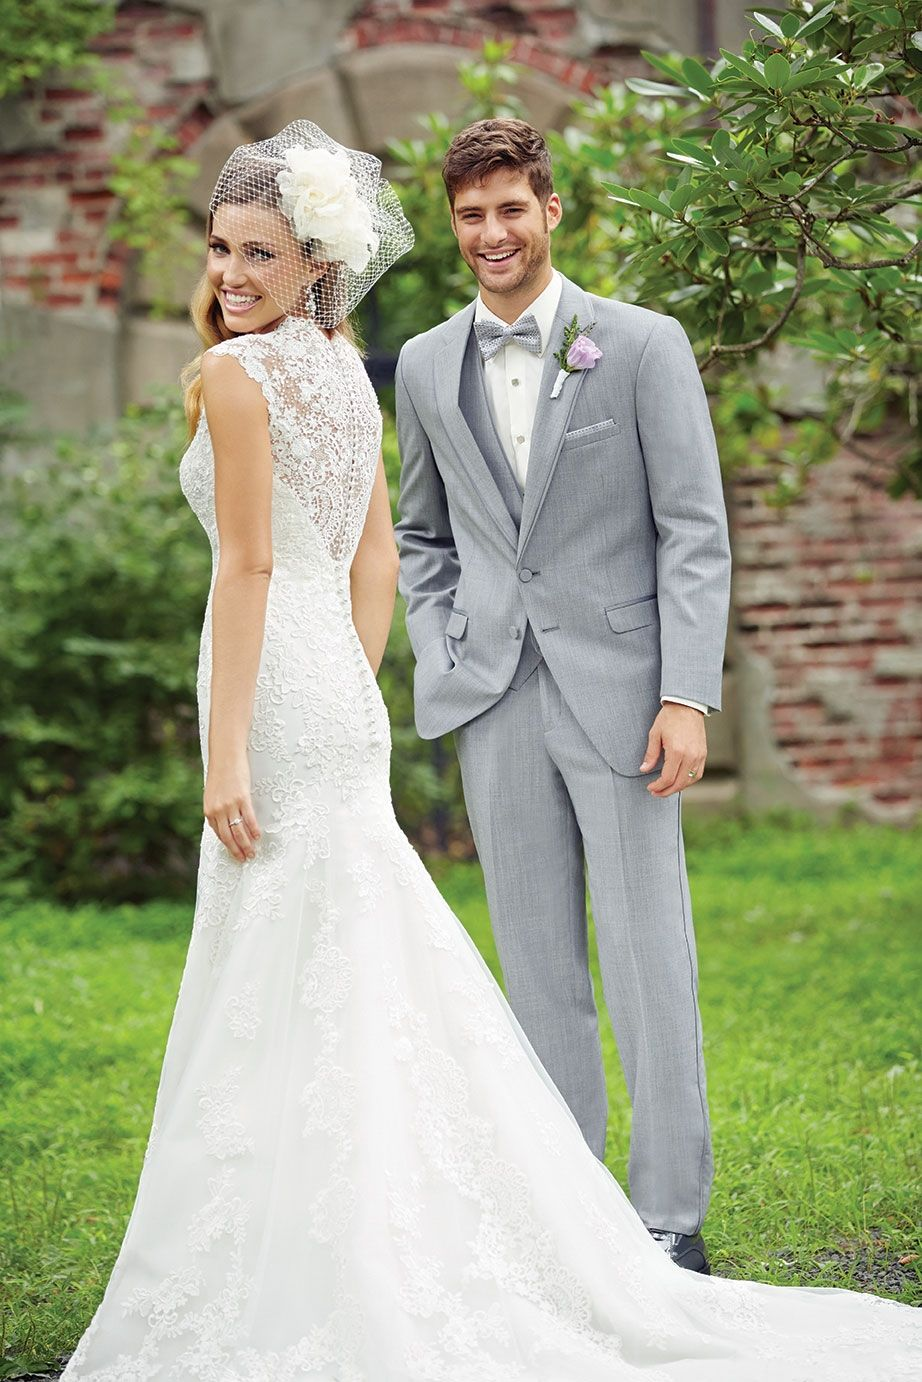 Our heather gray tuxedo would look perfect in your wedding party